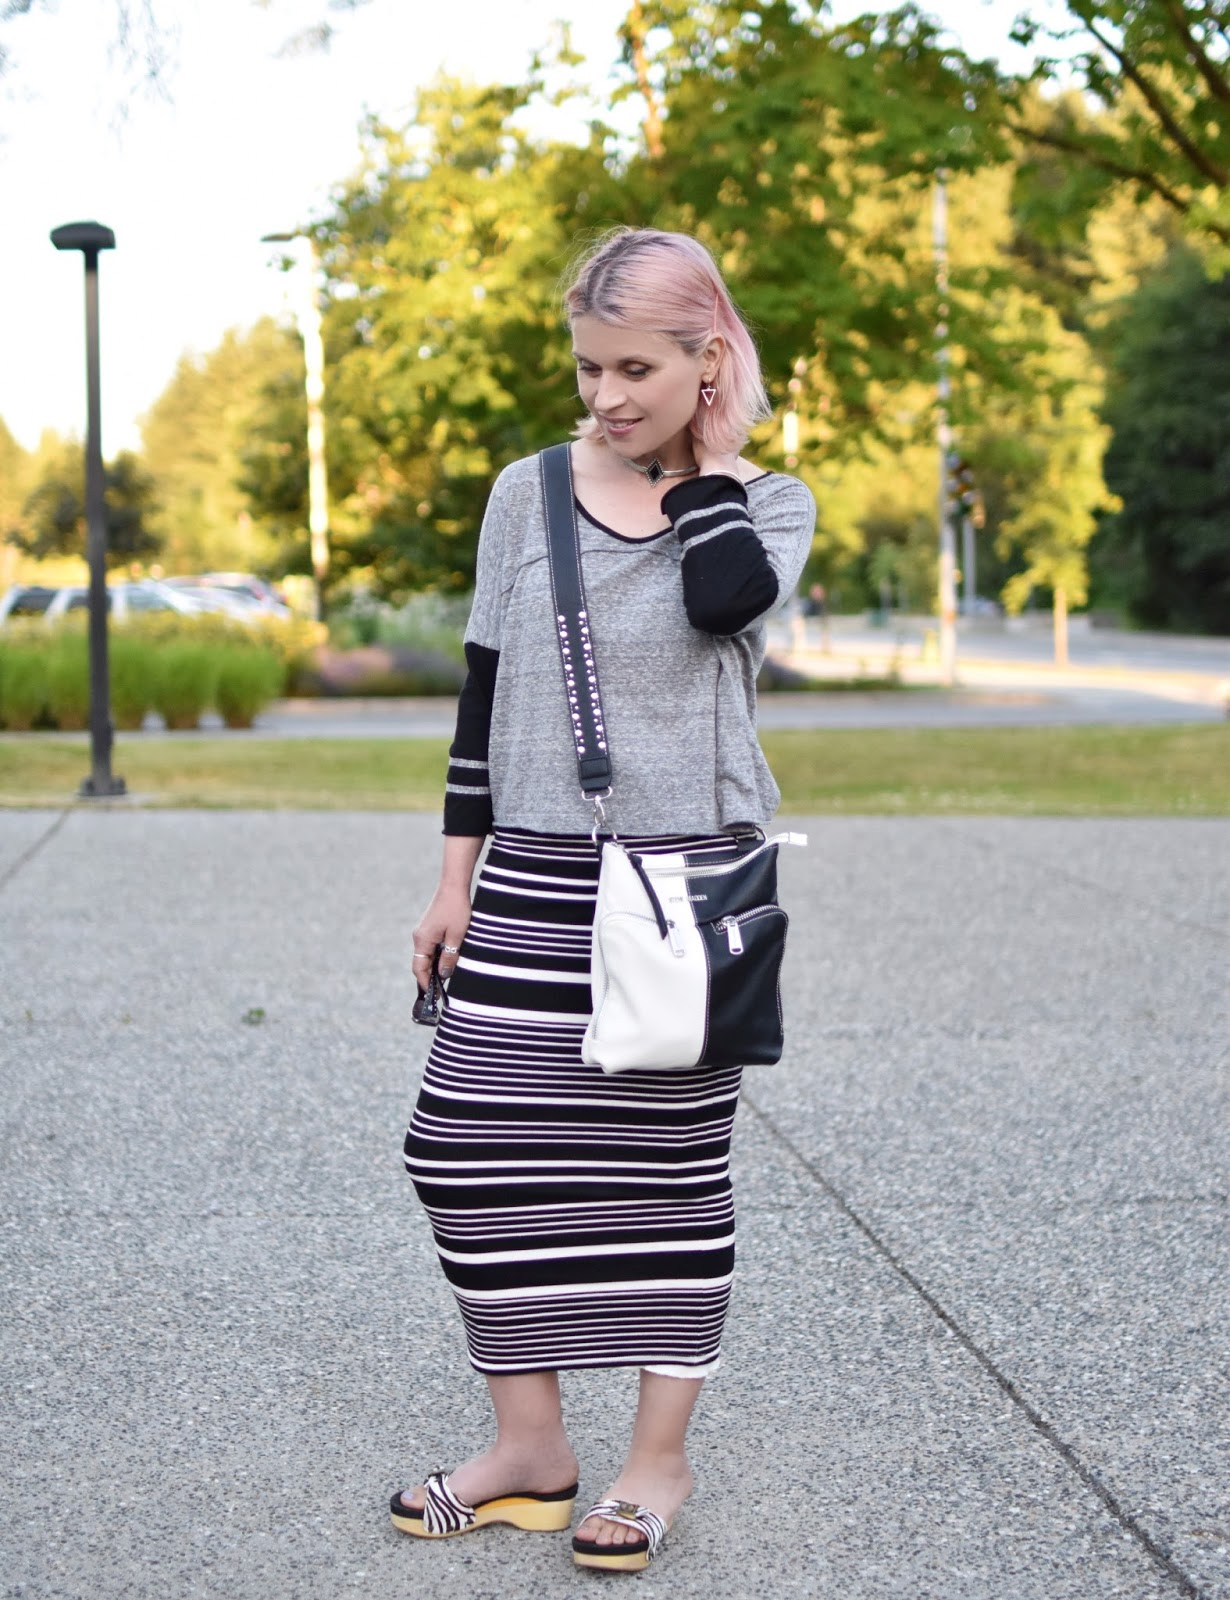 Monika Faulkner personal style inspiration - styling a baseball tee with a striped midi-length pencil skirt and Dr. Scholl's-inspired sandals